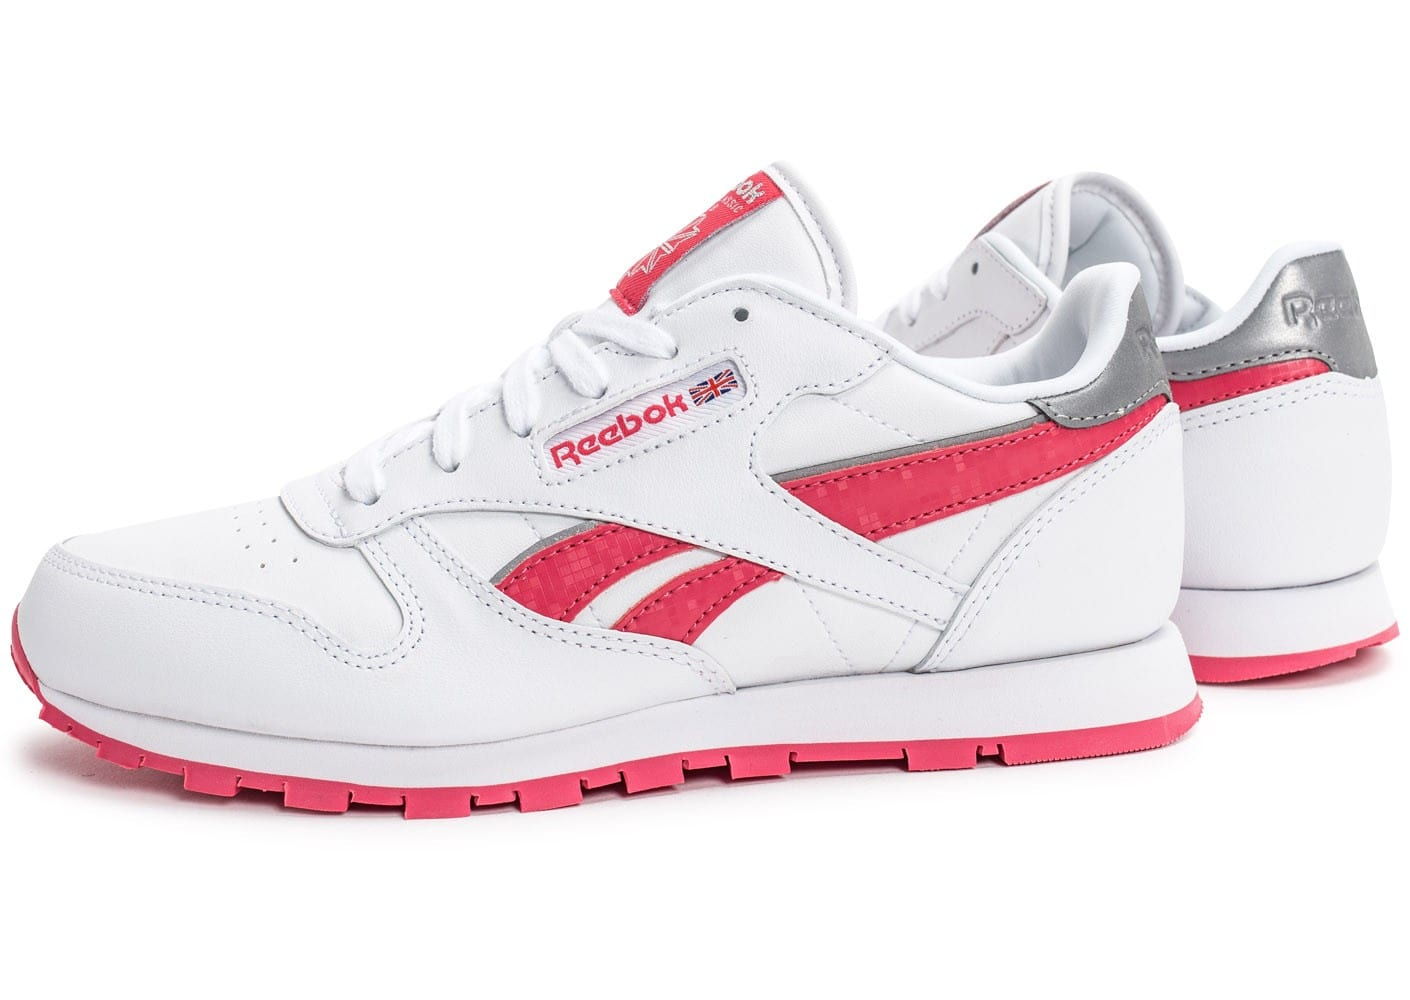 reebok classic leather reflect junior blanche et rose chaussures femme chausport. Black Bedroom Furniture Sets. Home Design Ideas